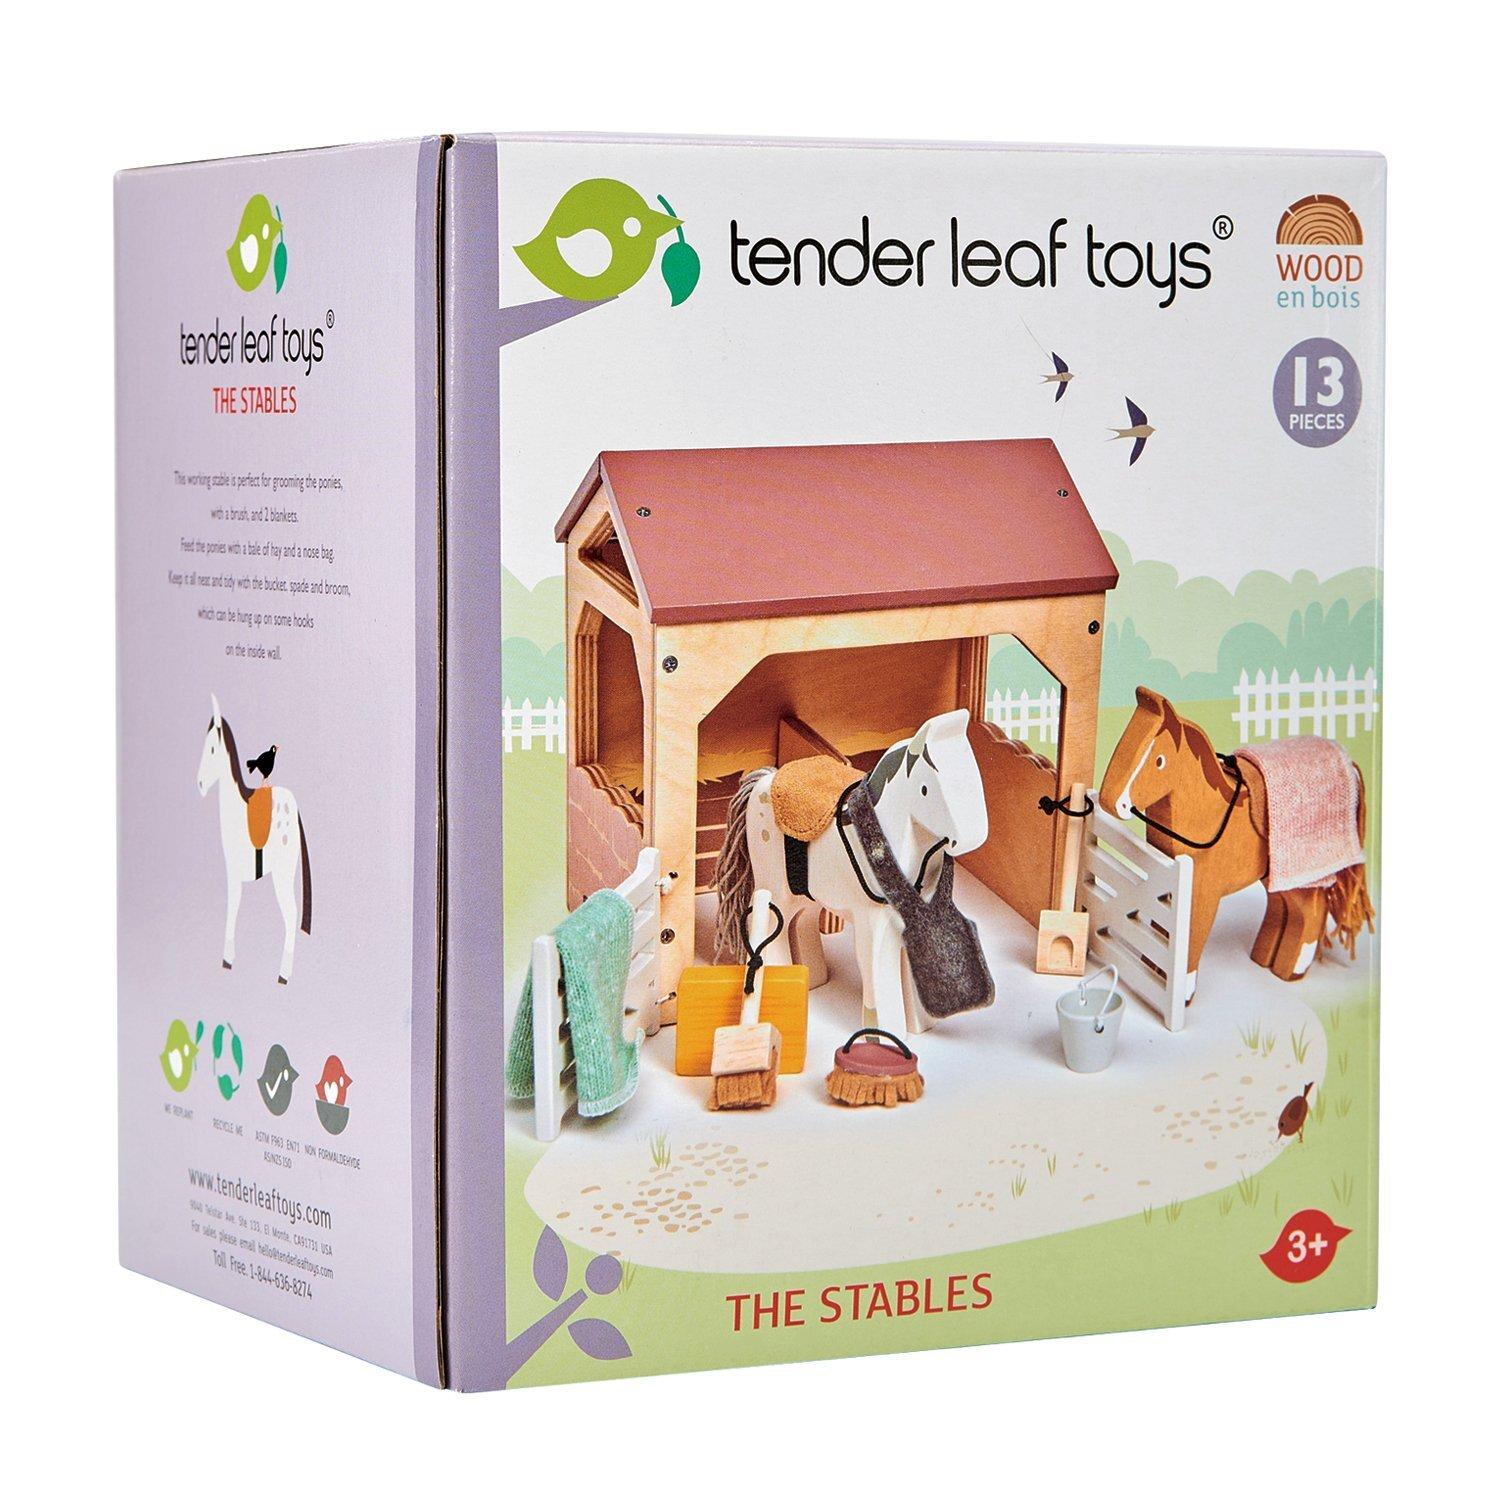 tender leaf toys stables in box